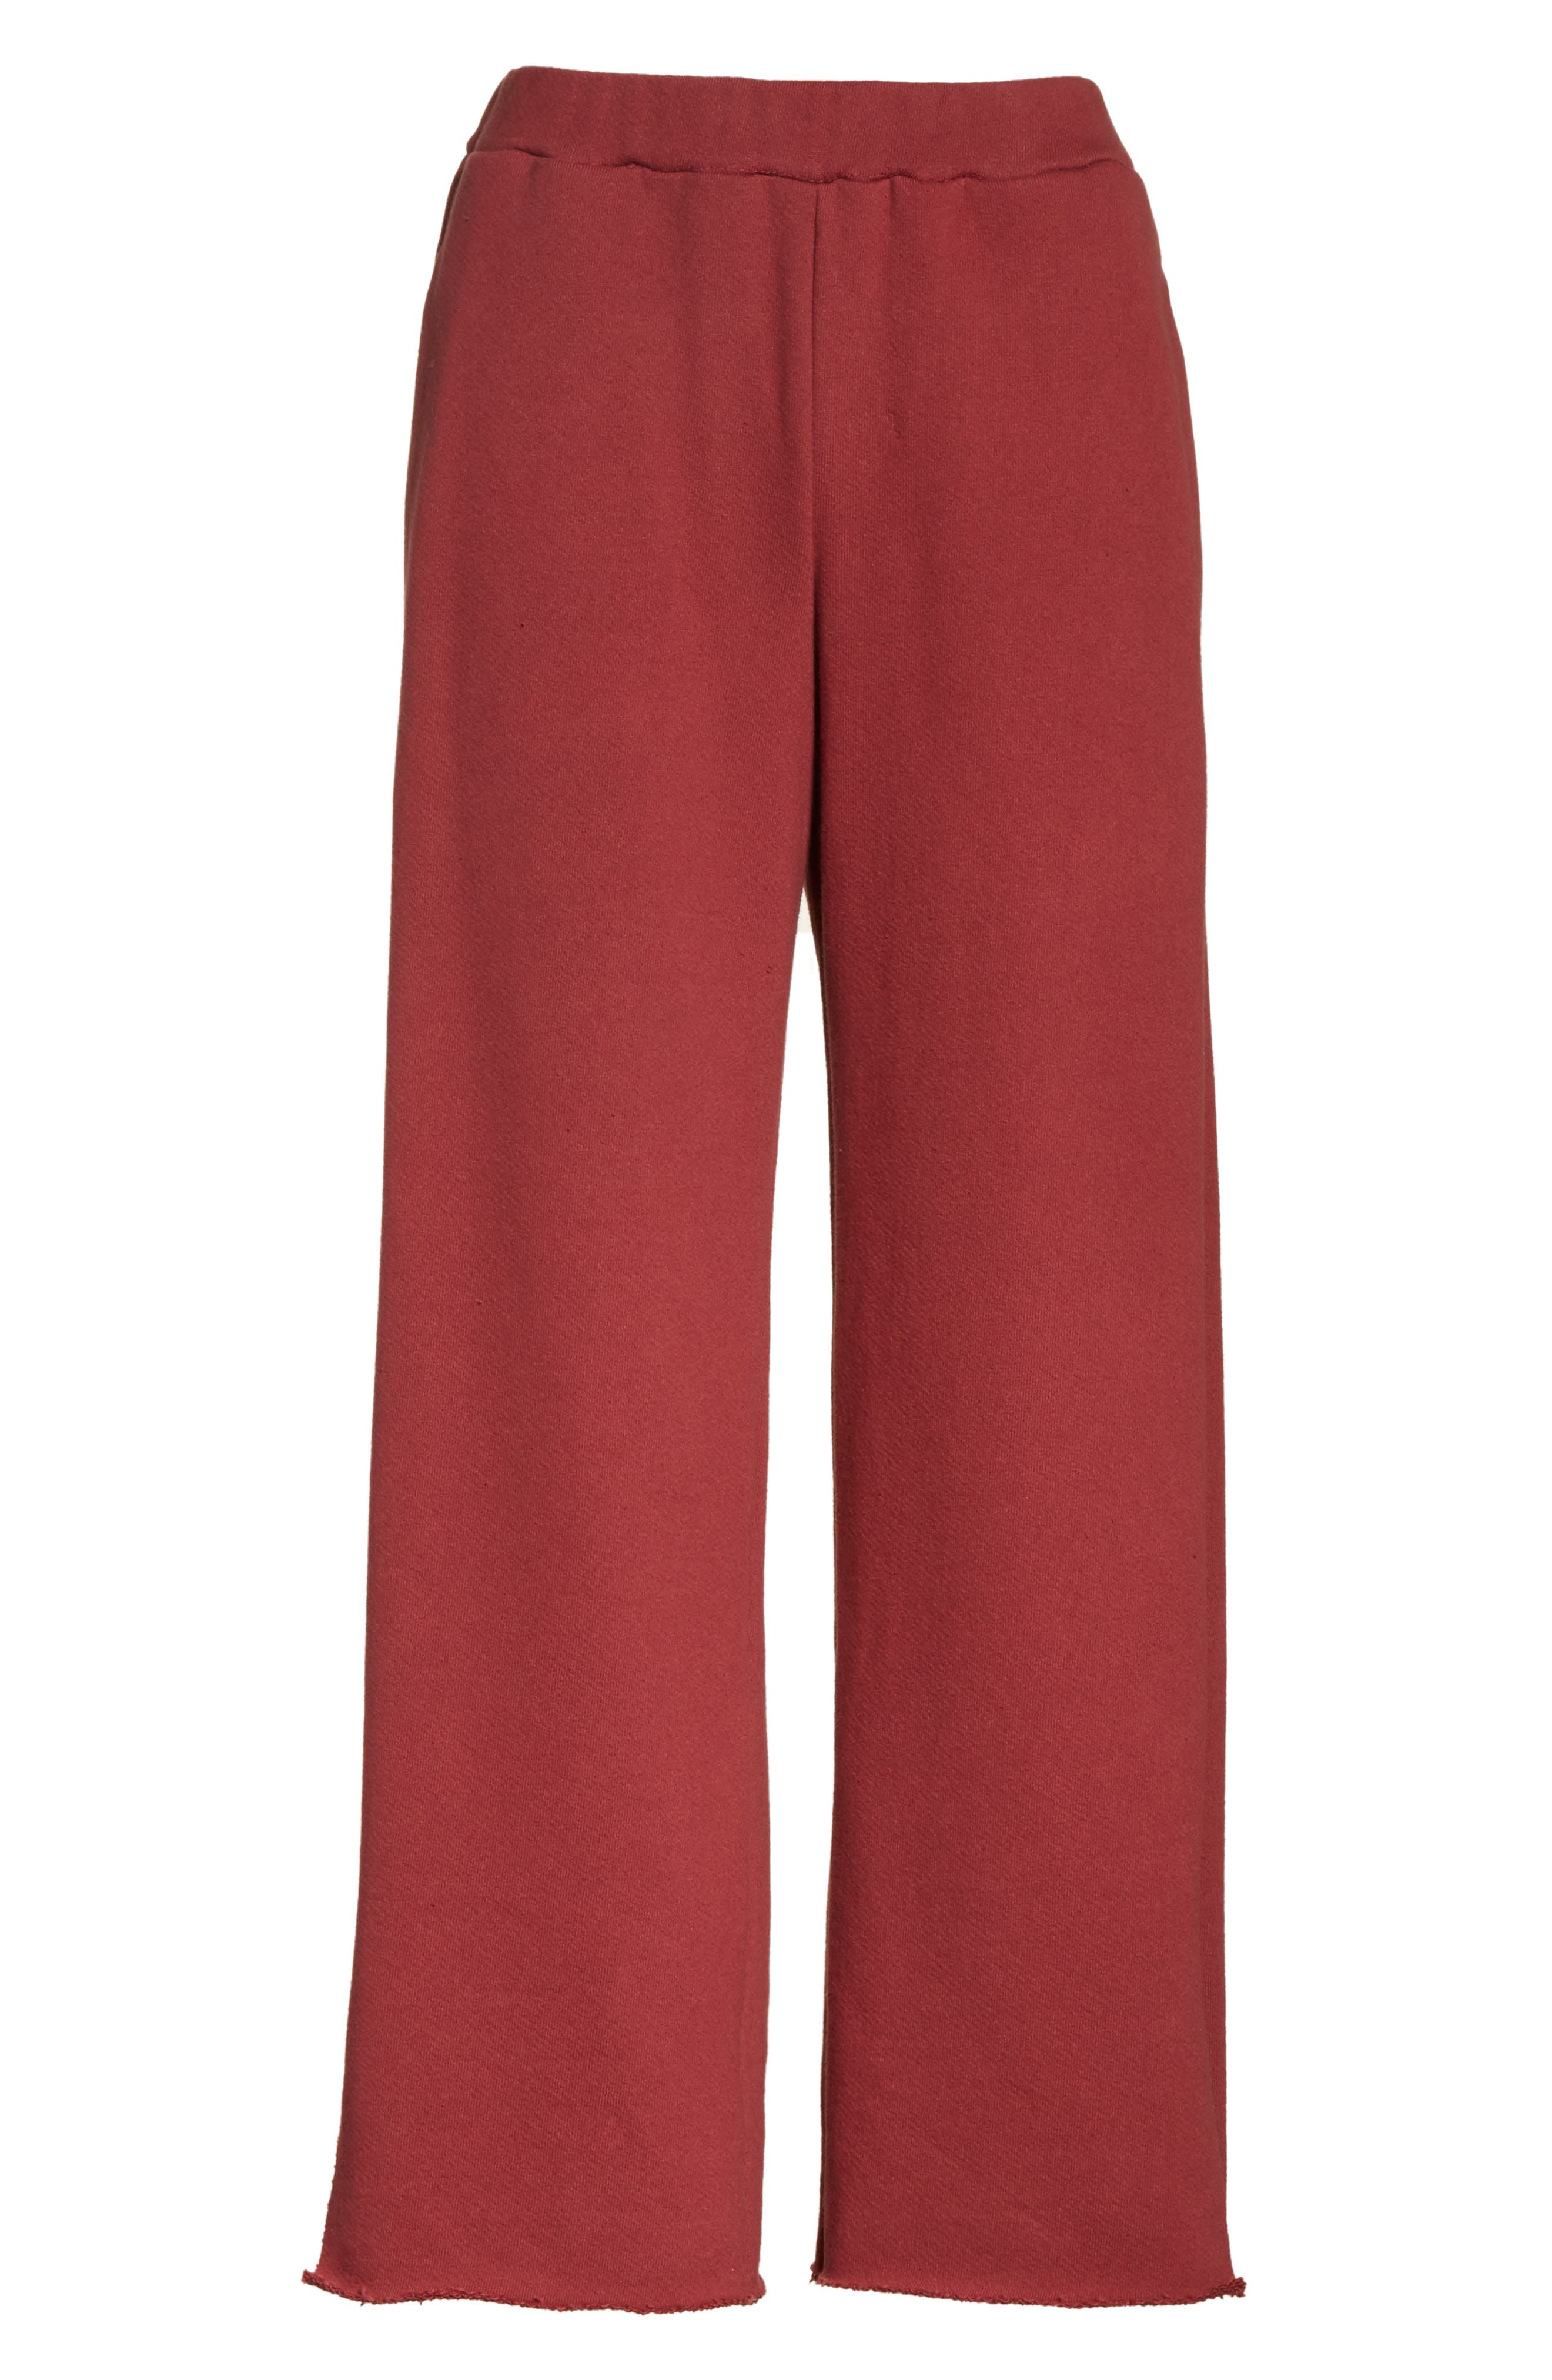 Canal French Terry Sweatpants,                             Alternate thumbnail 6, color,                             650